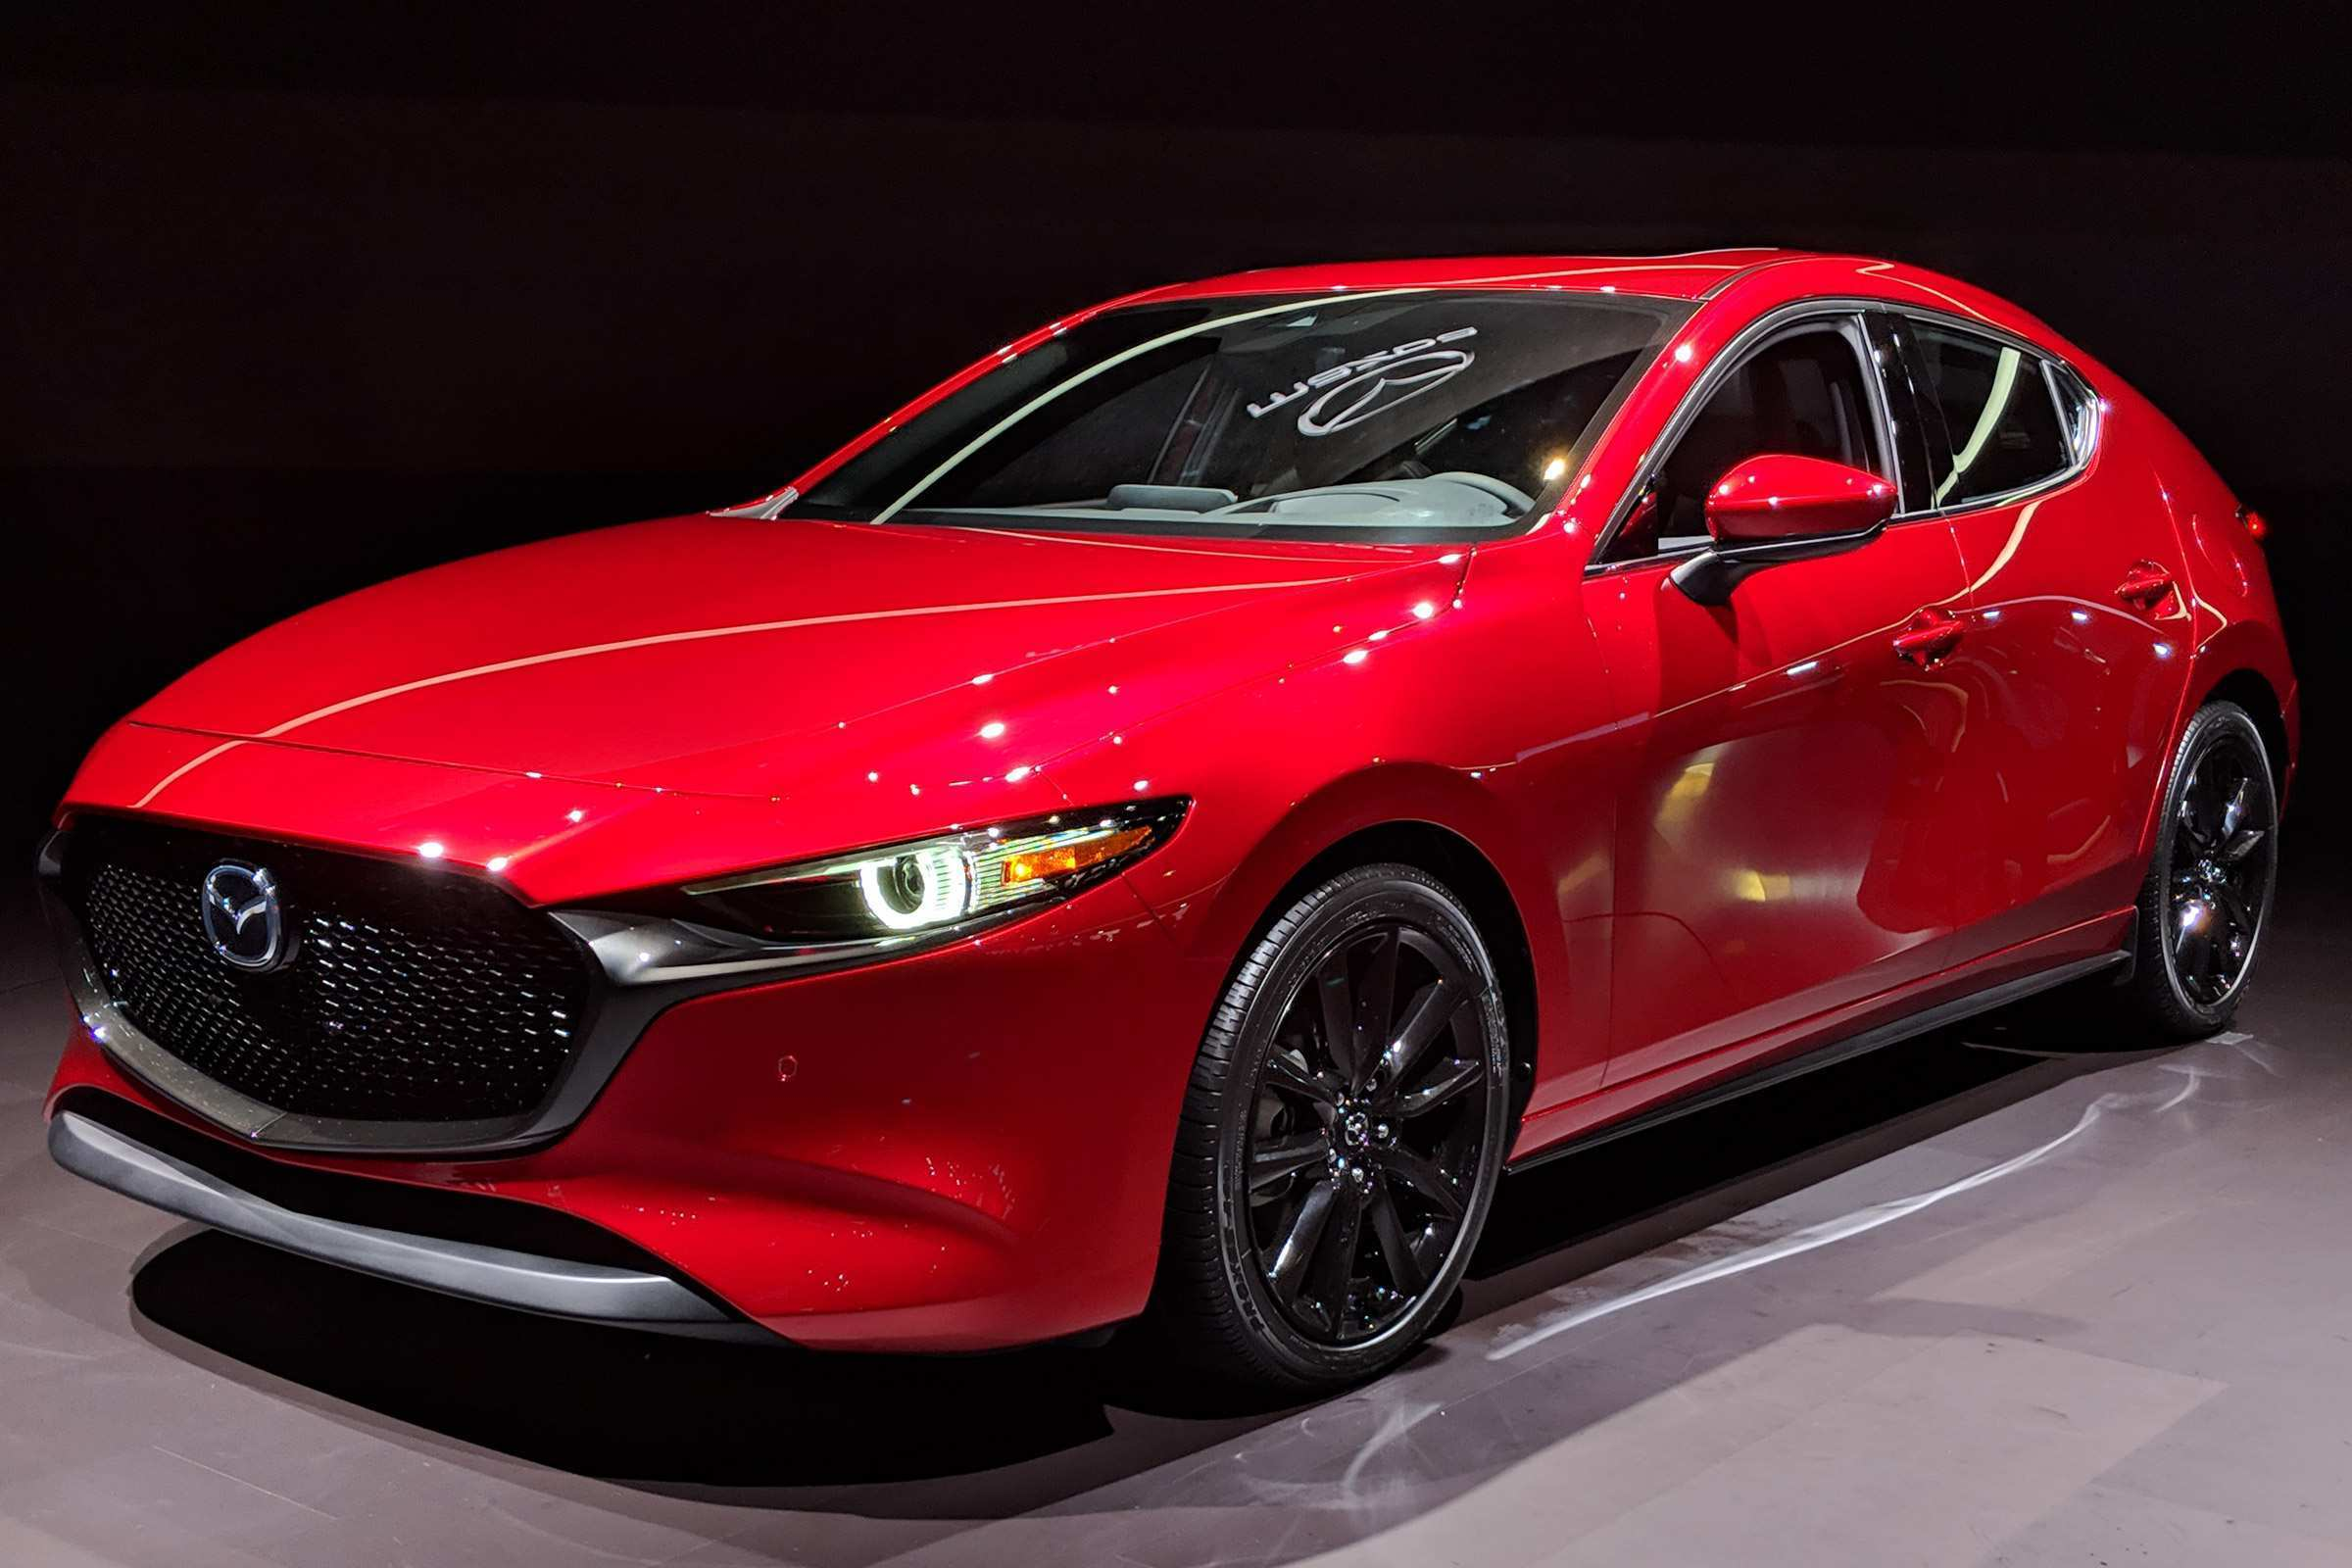 80 The Mazda 3 2019 Gt Performance with Mazda 3 2019 Gt